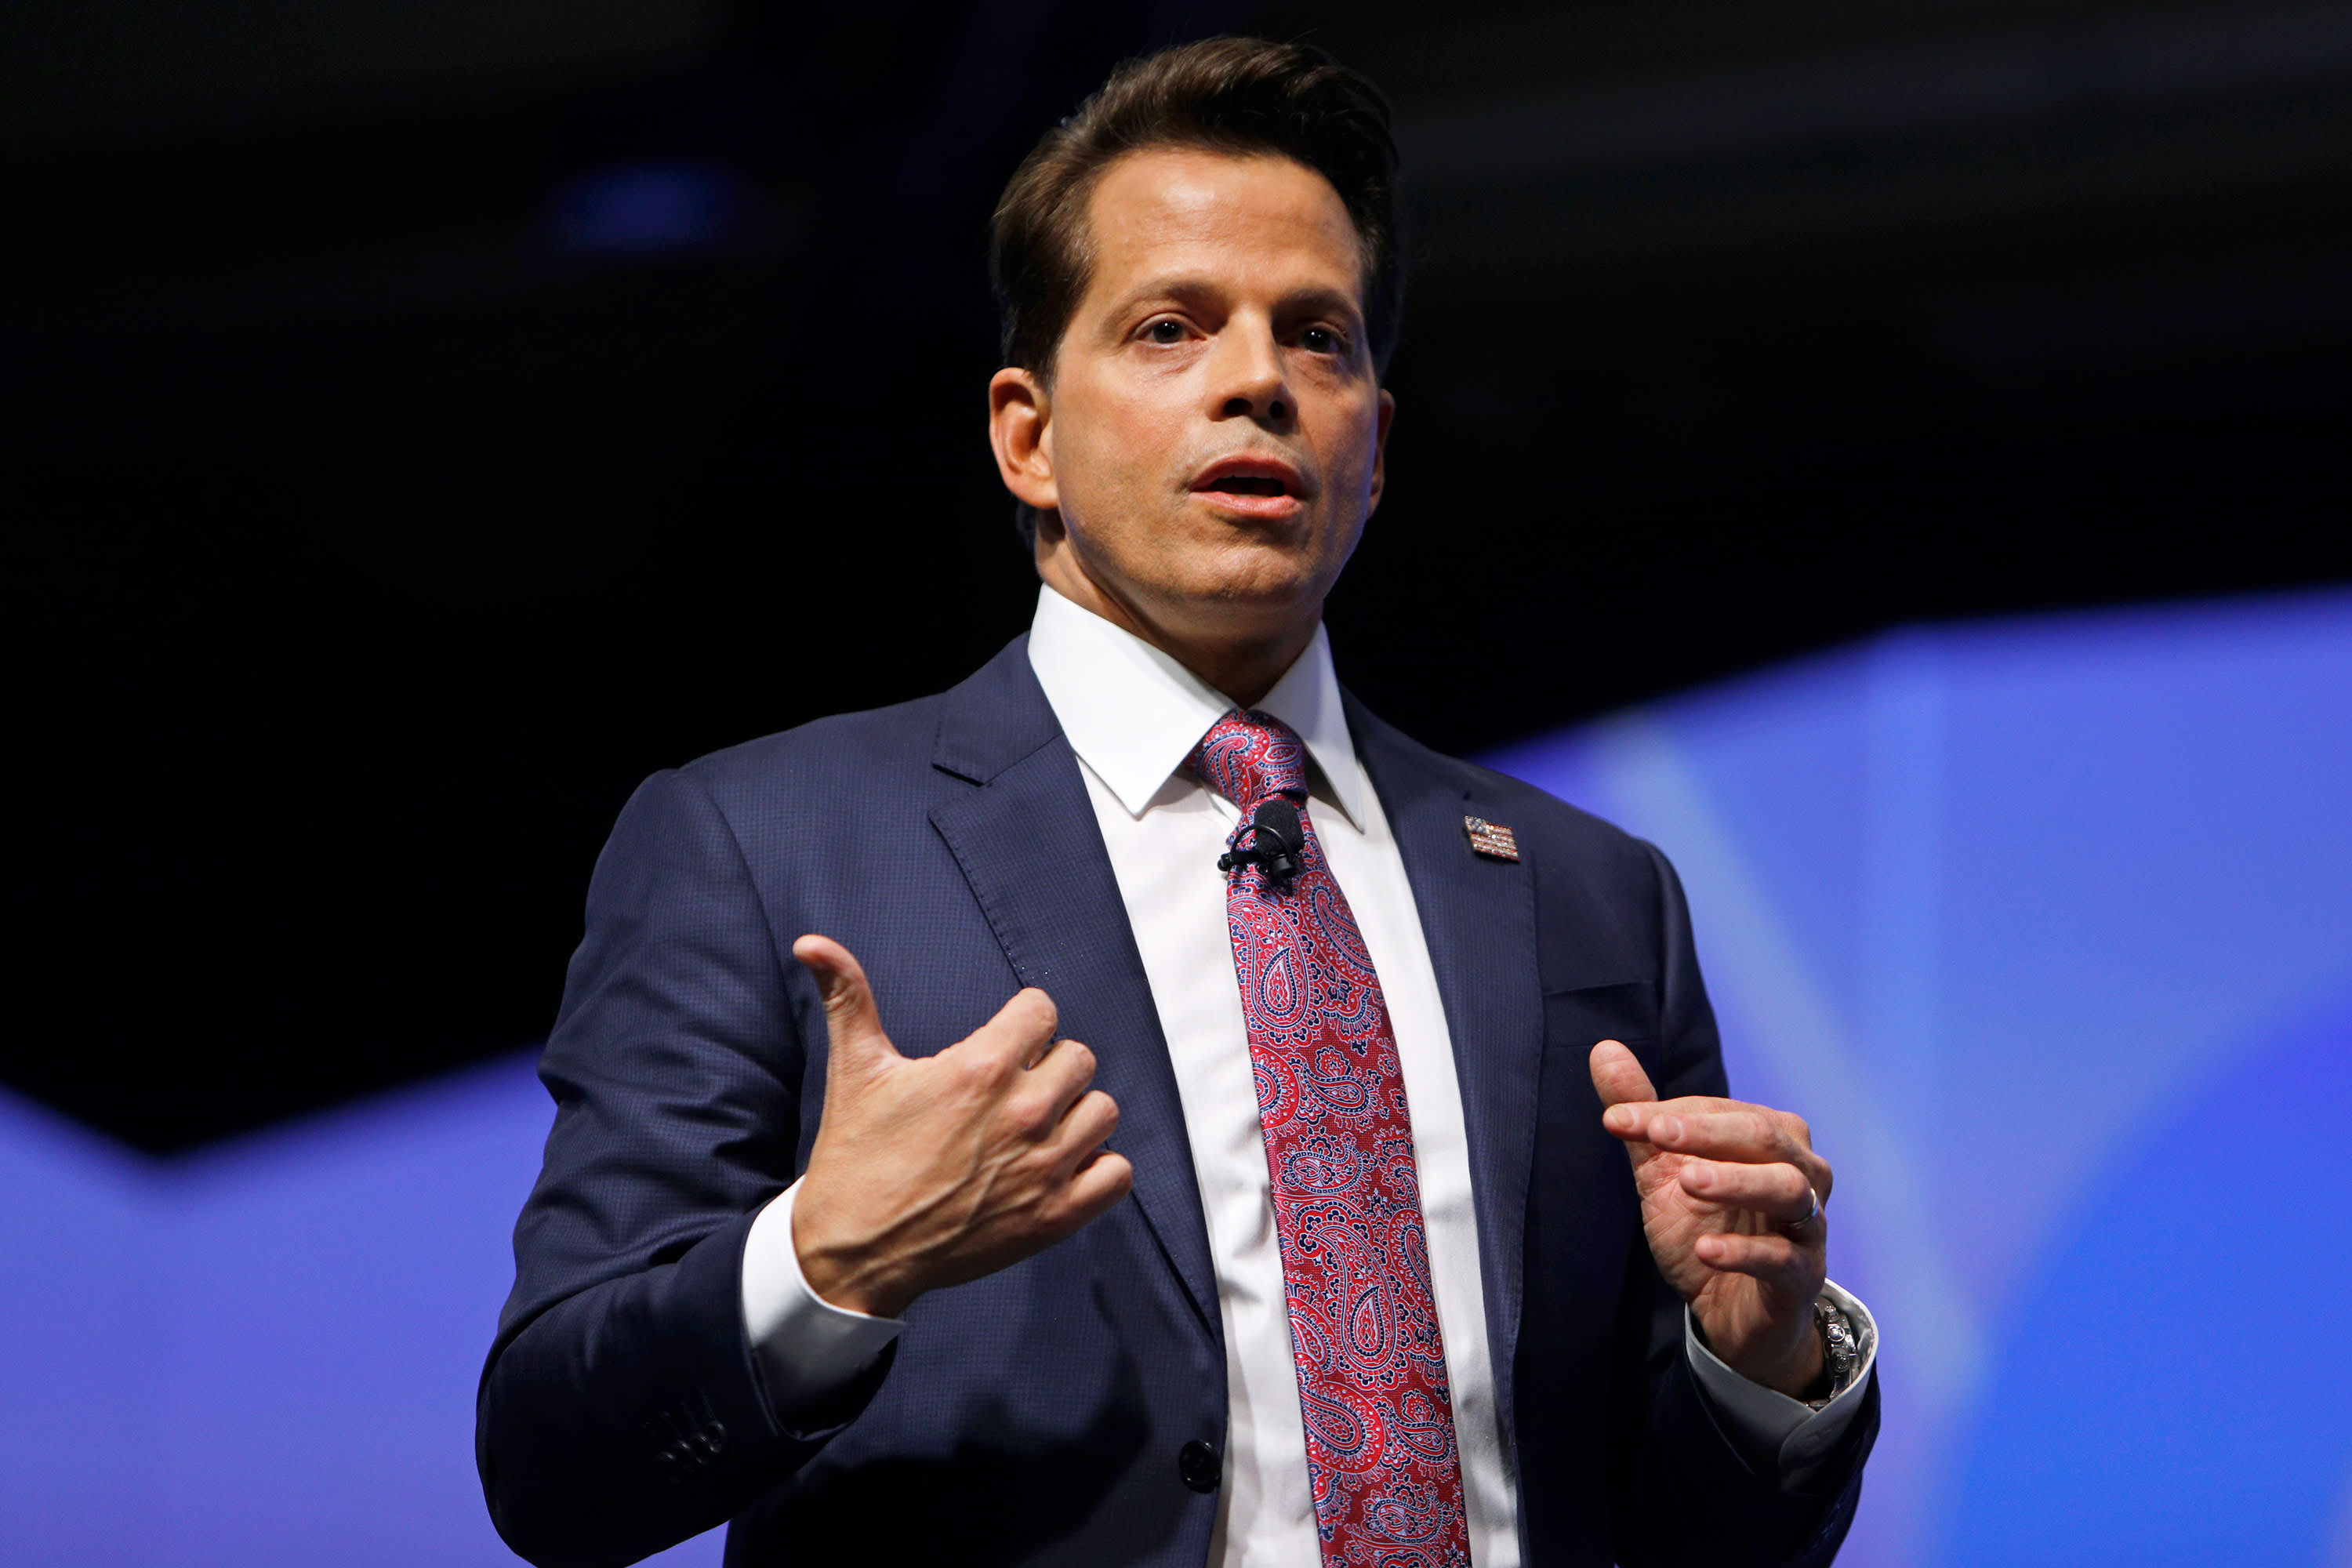 Anthony Scaramucci encourages Iran to ratchet back tensions, says Trump is 'very fearless'